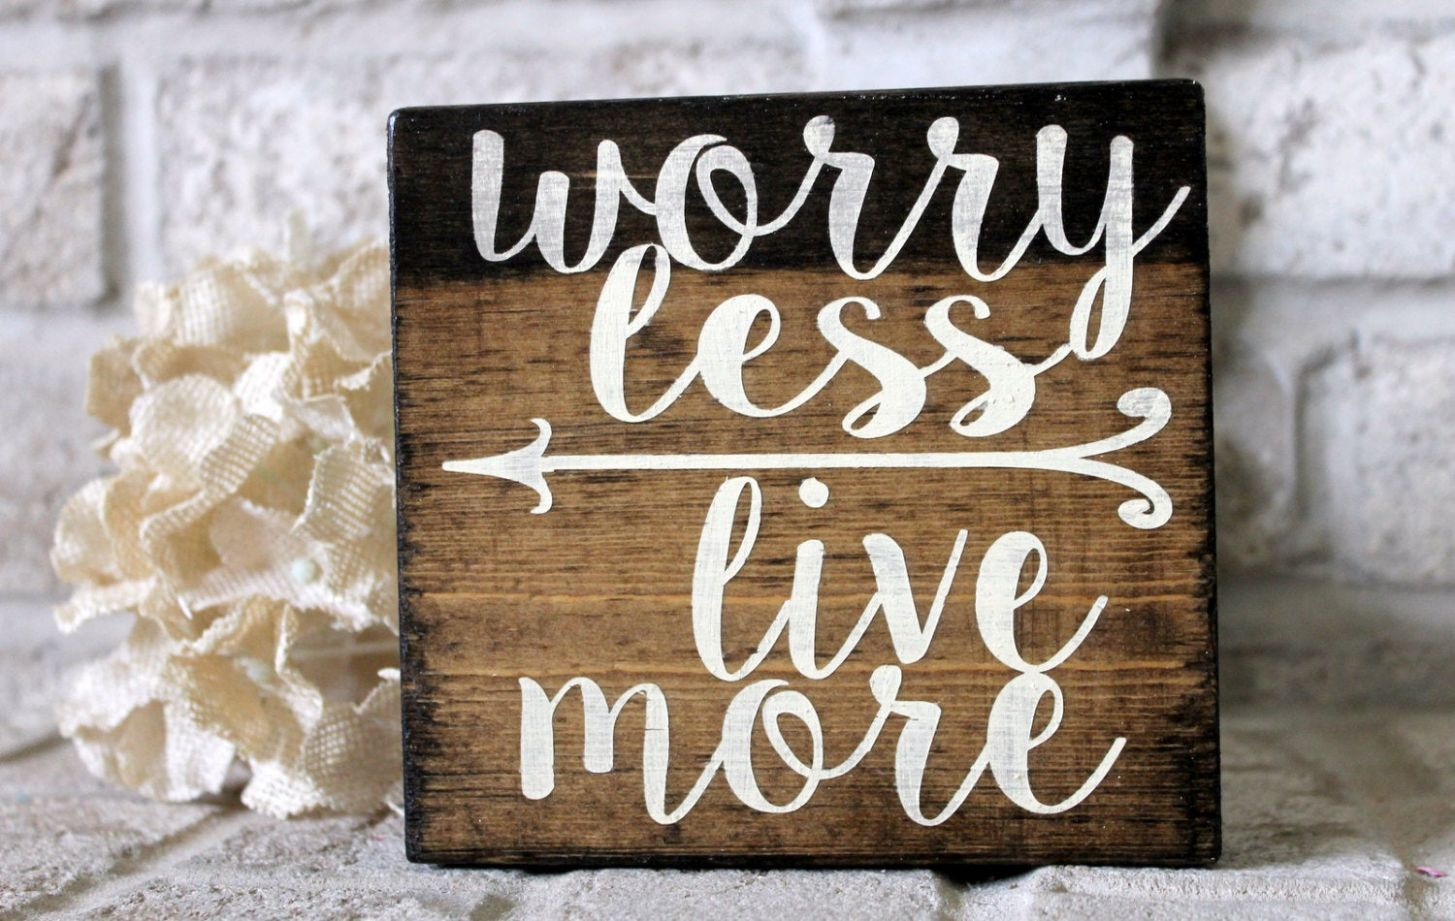 9 New Home Decor Quotes On Wood - home decor - home decor quotes on wood